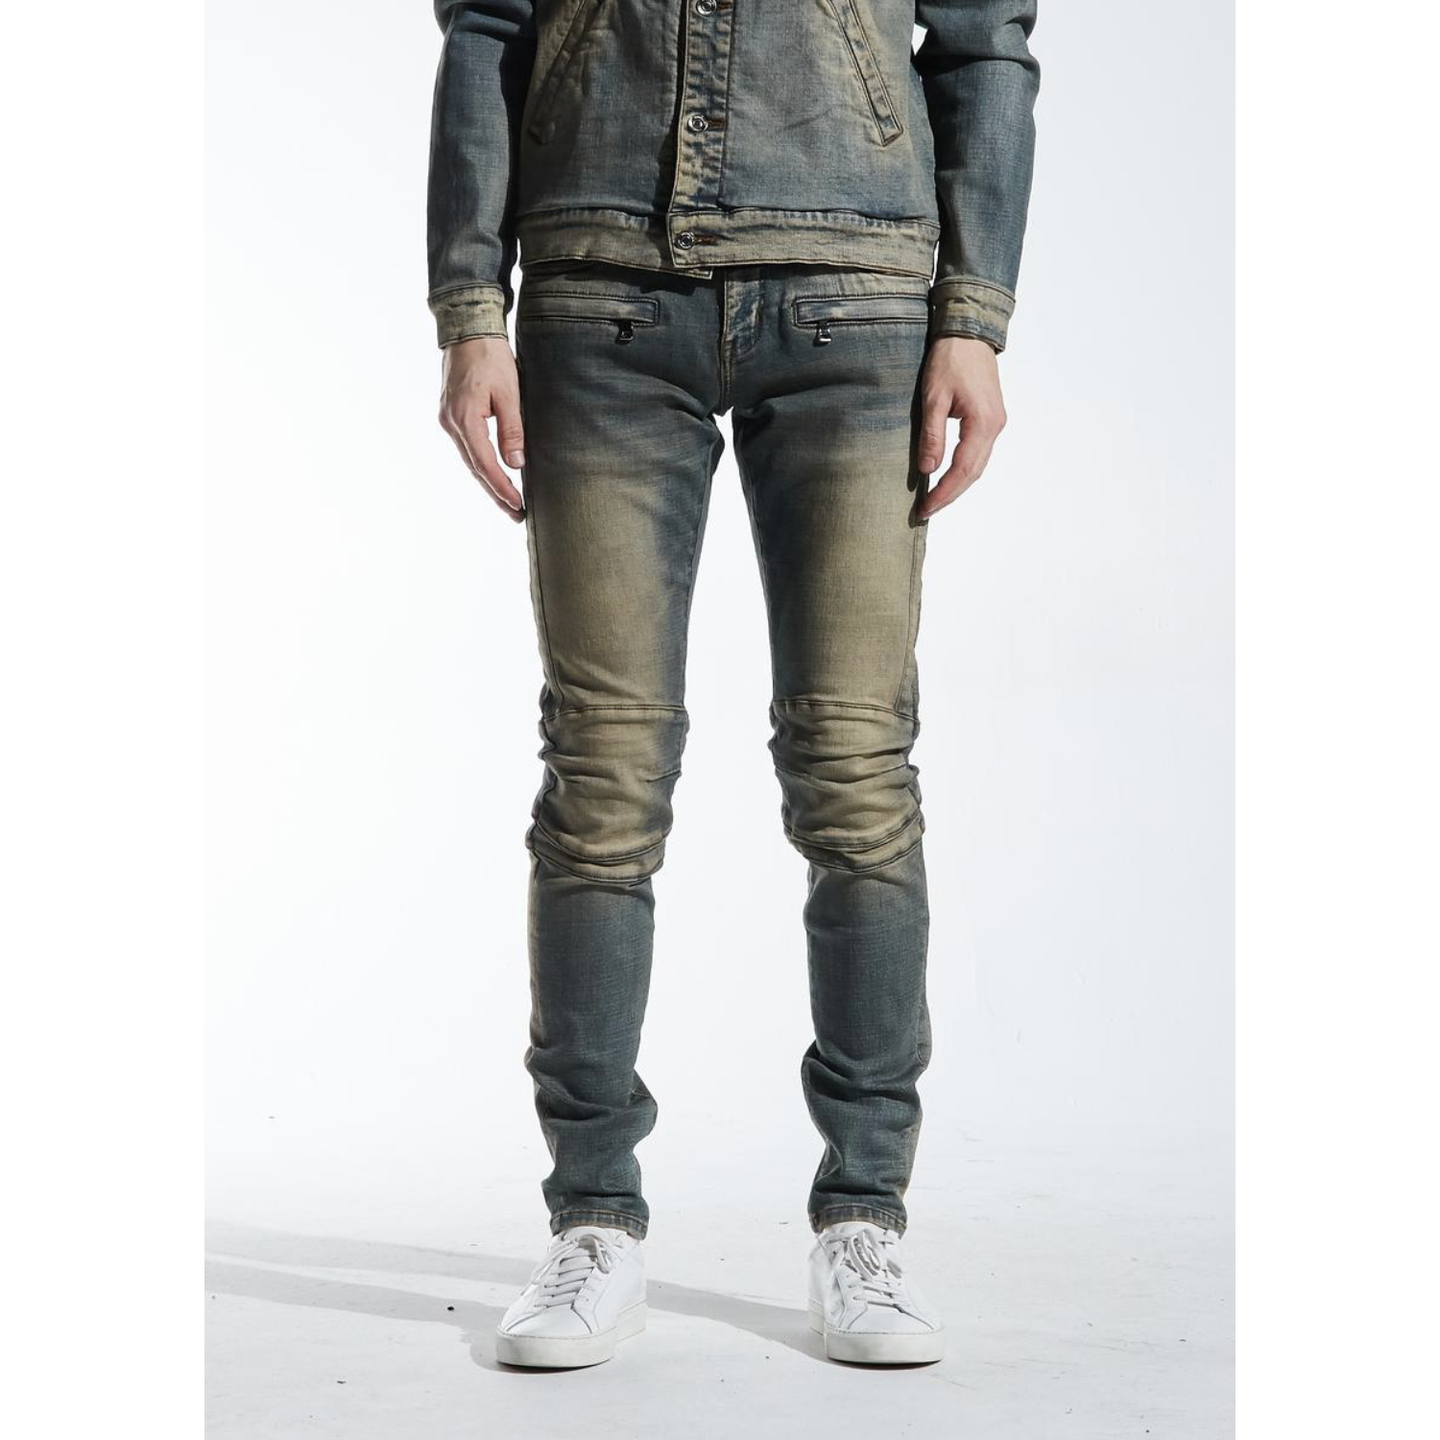 Crysp Denim Sand Wash Hudson Denim Jeans (CRYSPSP220-129) In Stock